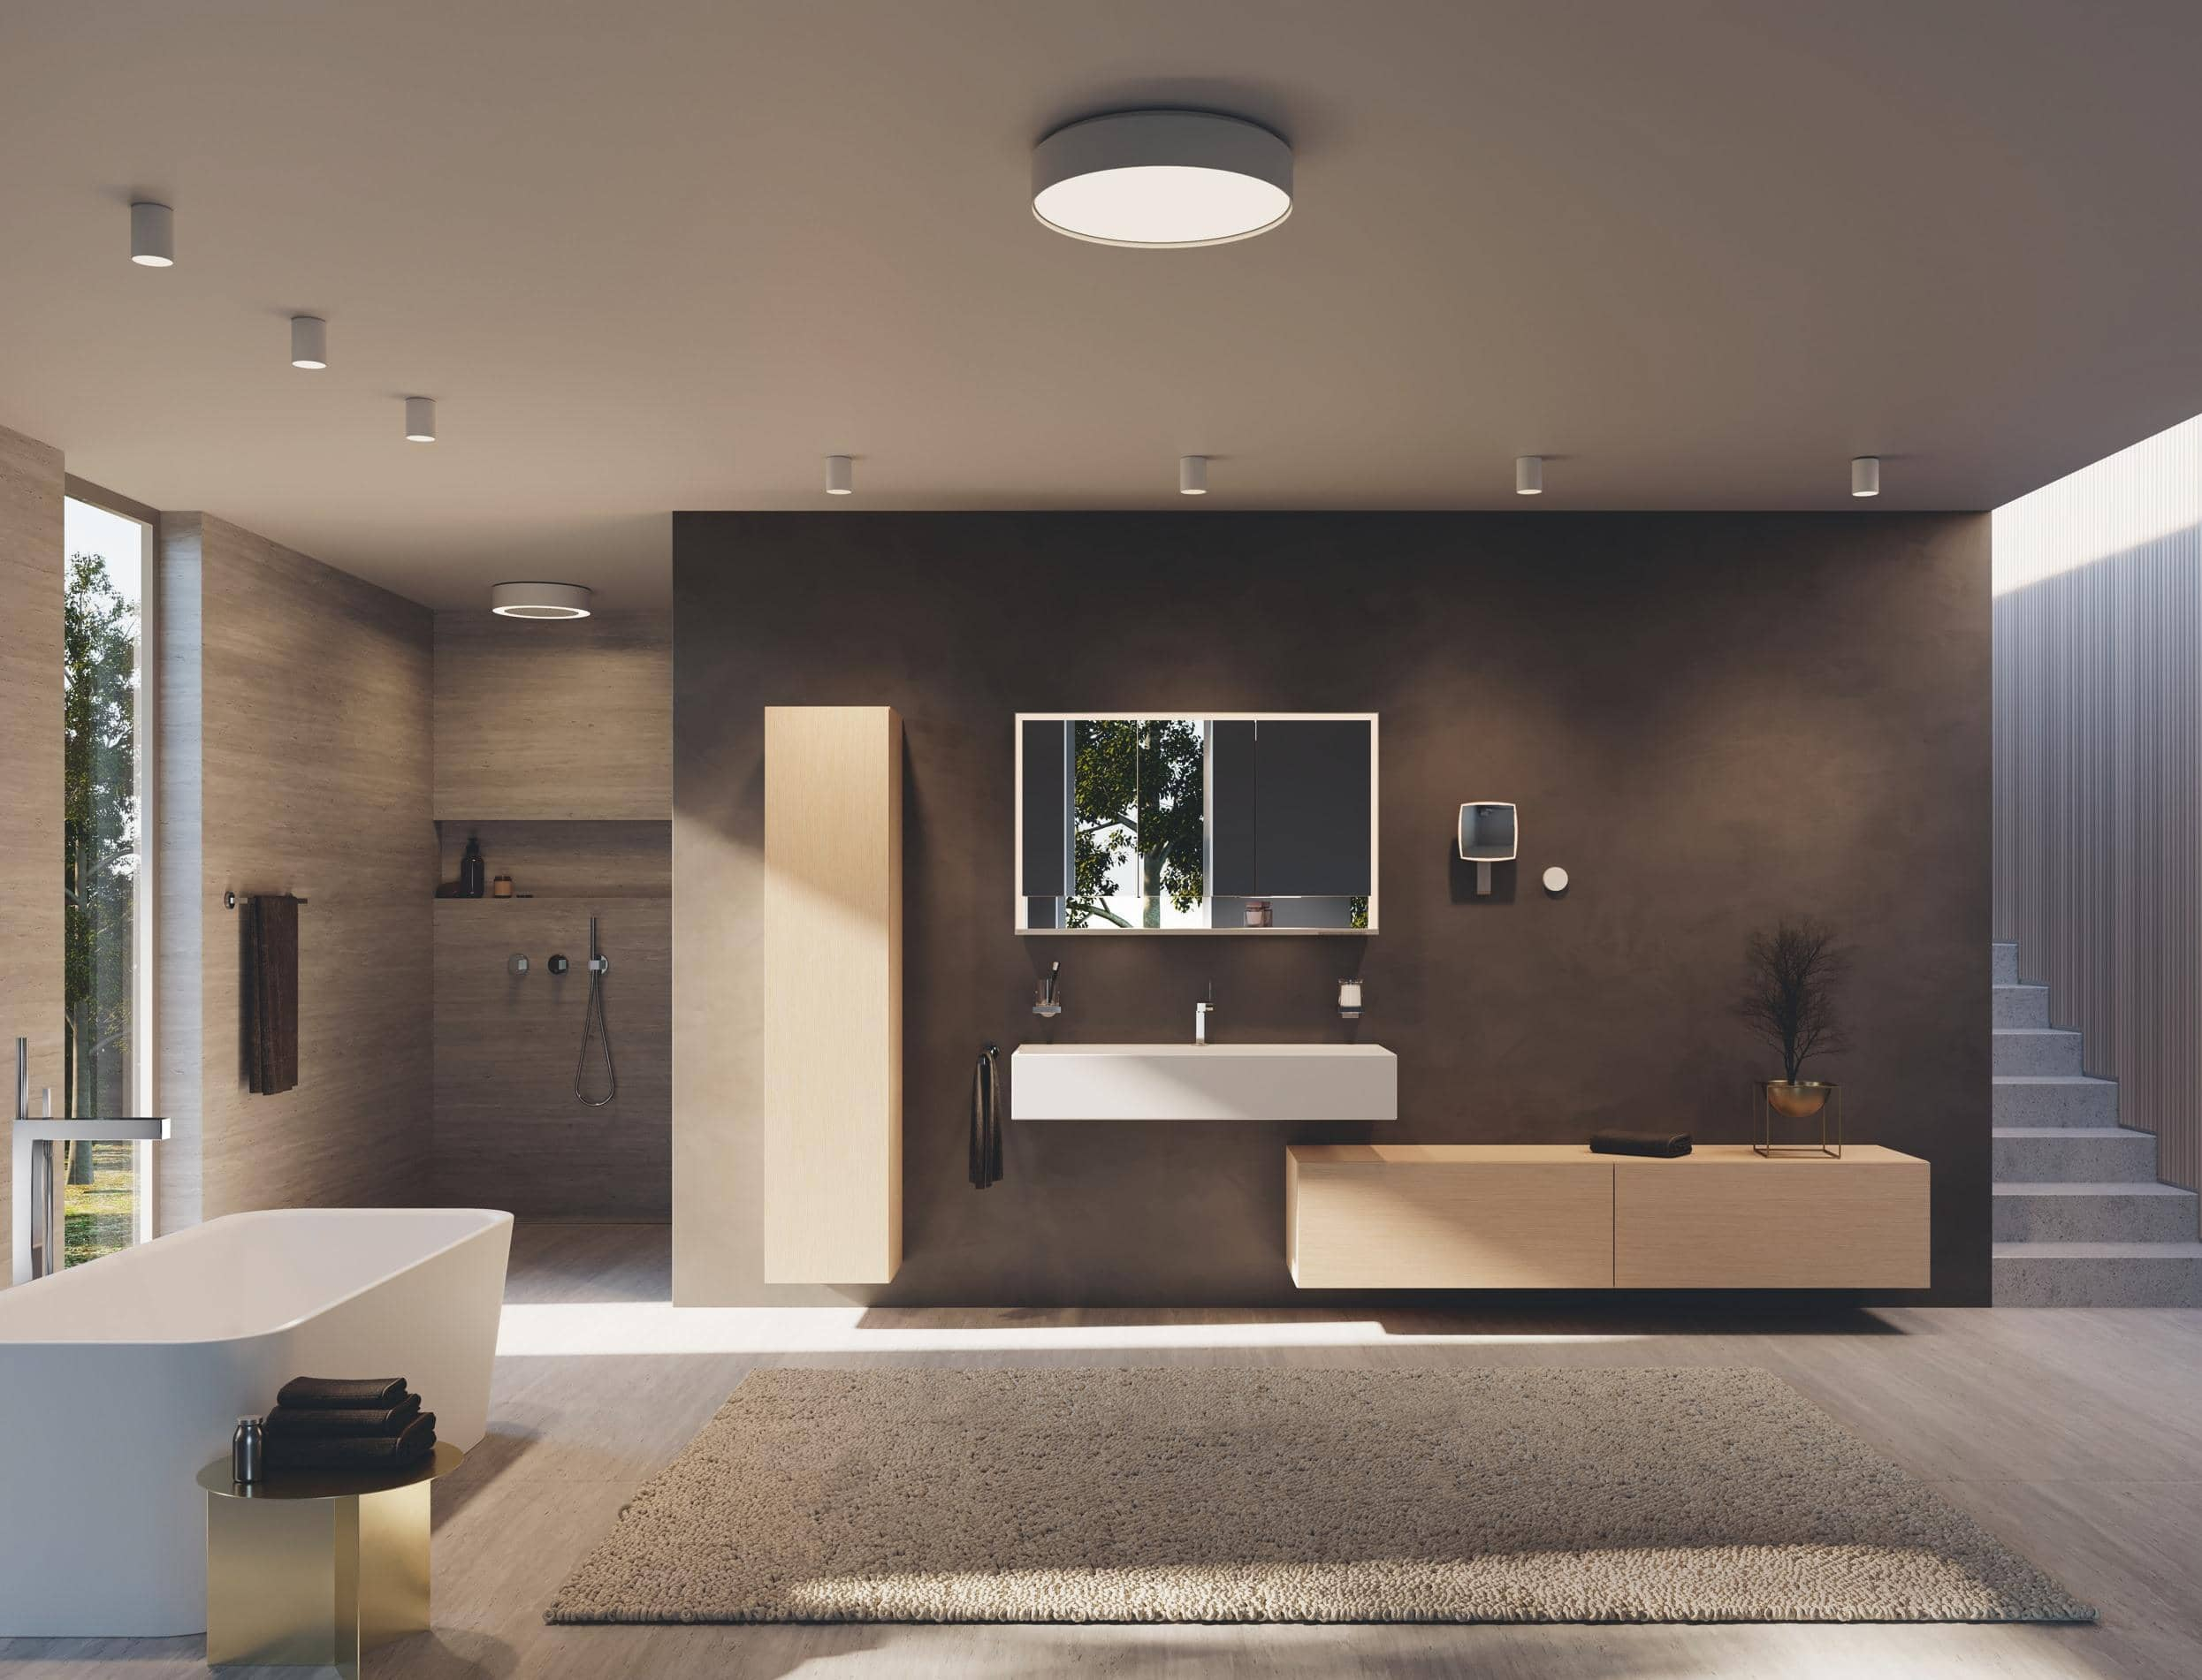 LUXE BATH SPACES